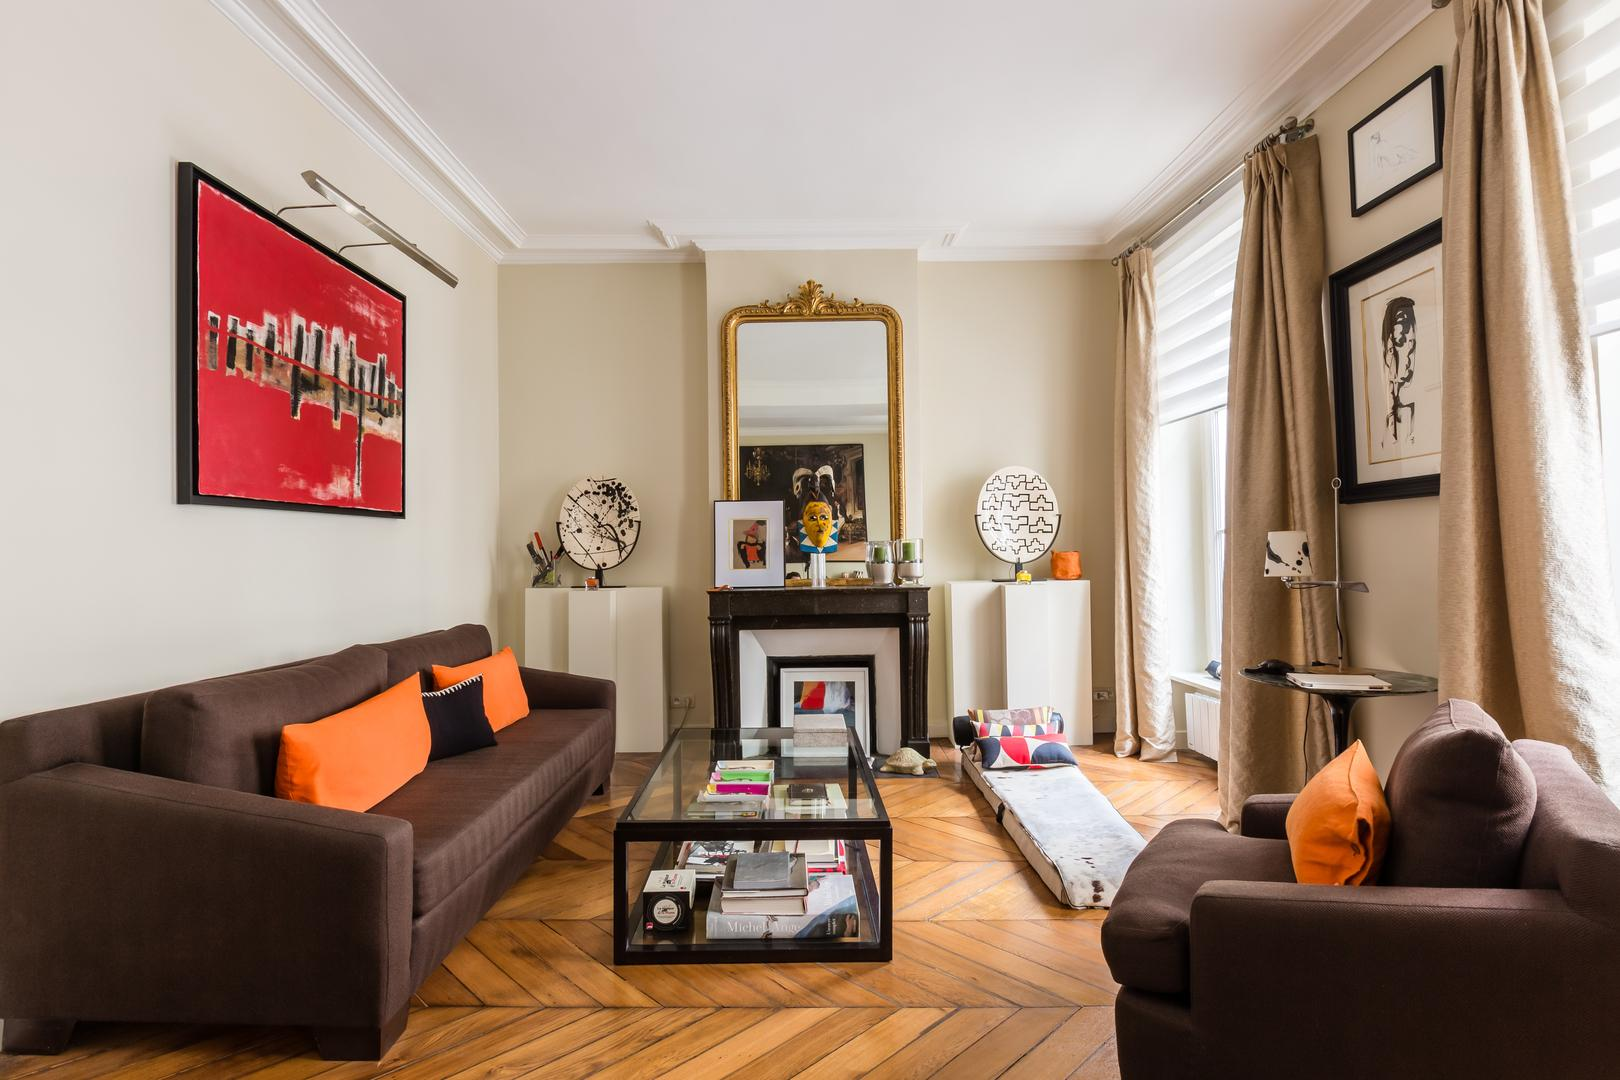 Property Image 1 - Chic Apartment with Artwork by Pont Neuf